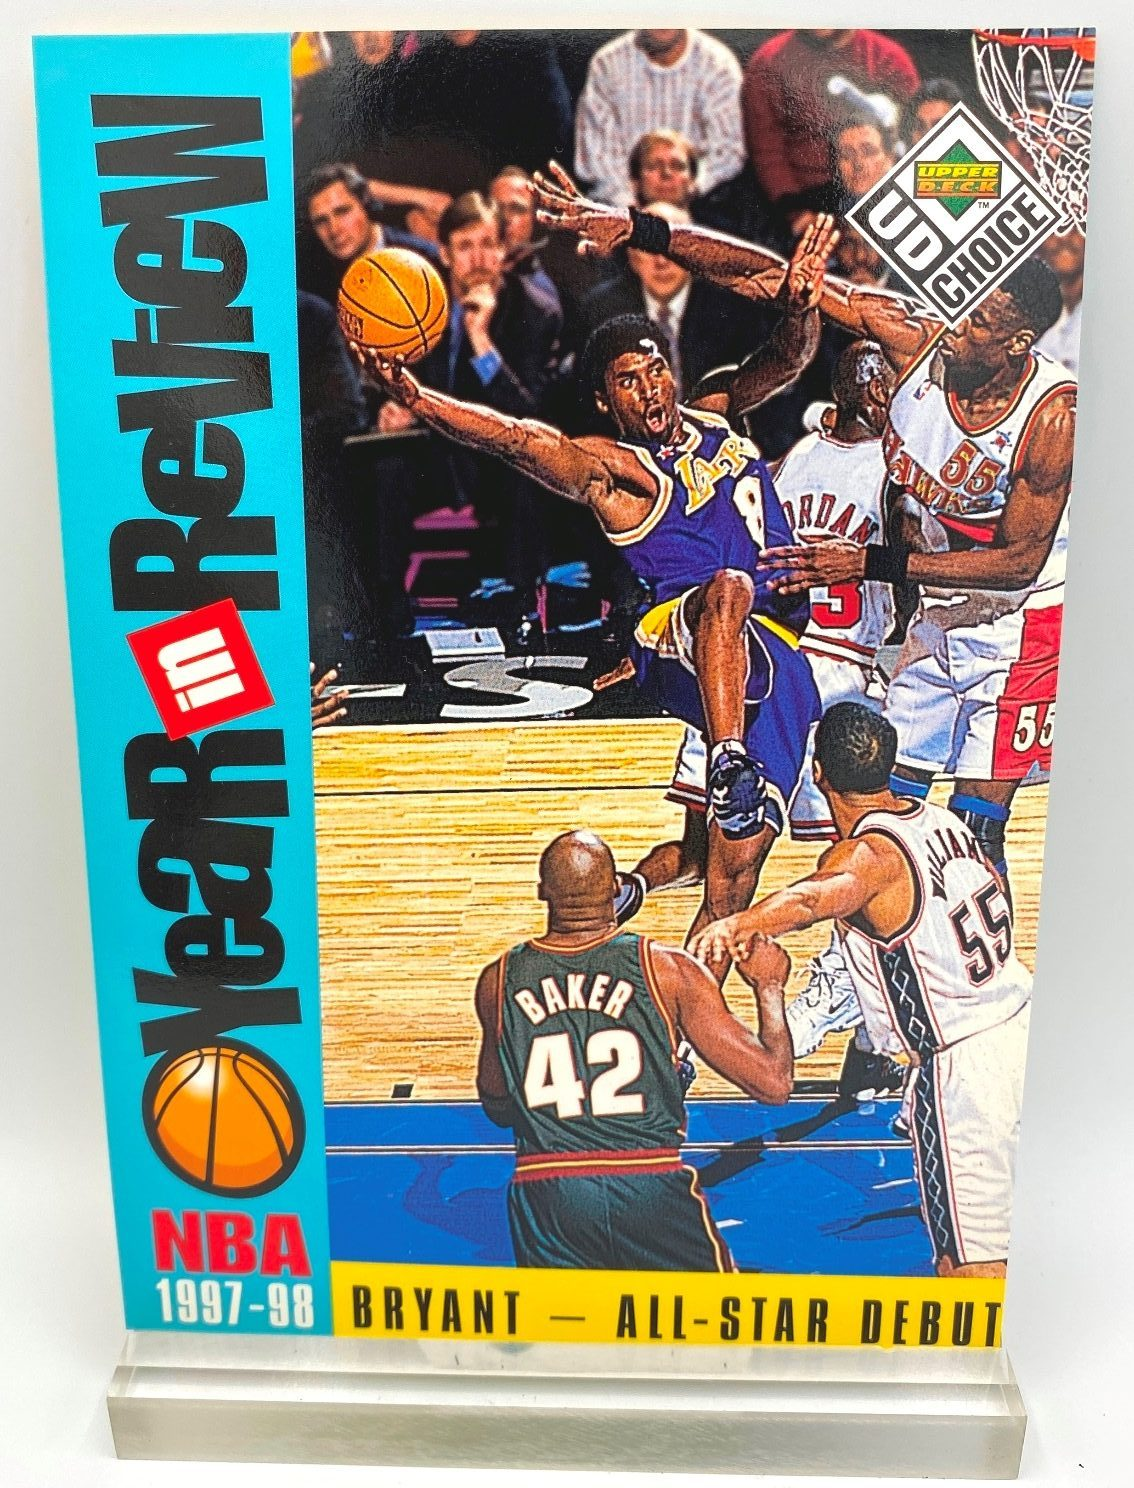 1997-98 Upper Deck All-Star Debut (Kobe Bryant) Year In Review 5x7 (1pc) Card # R1 (1)